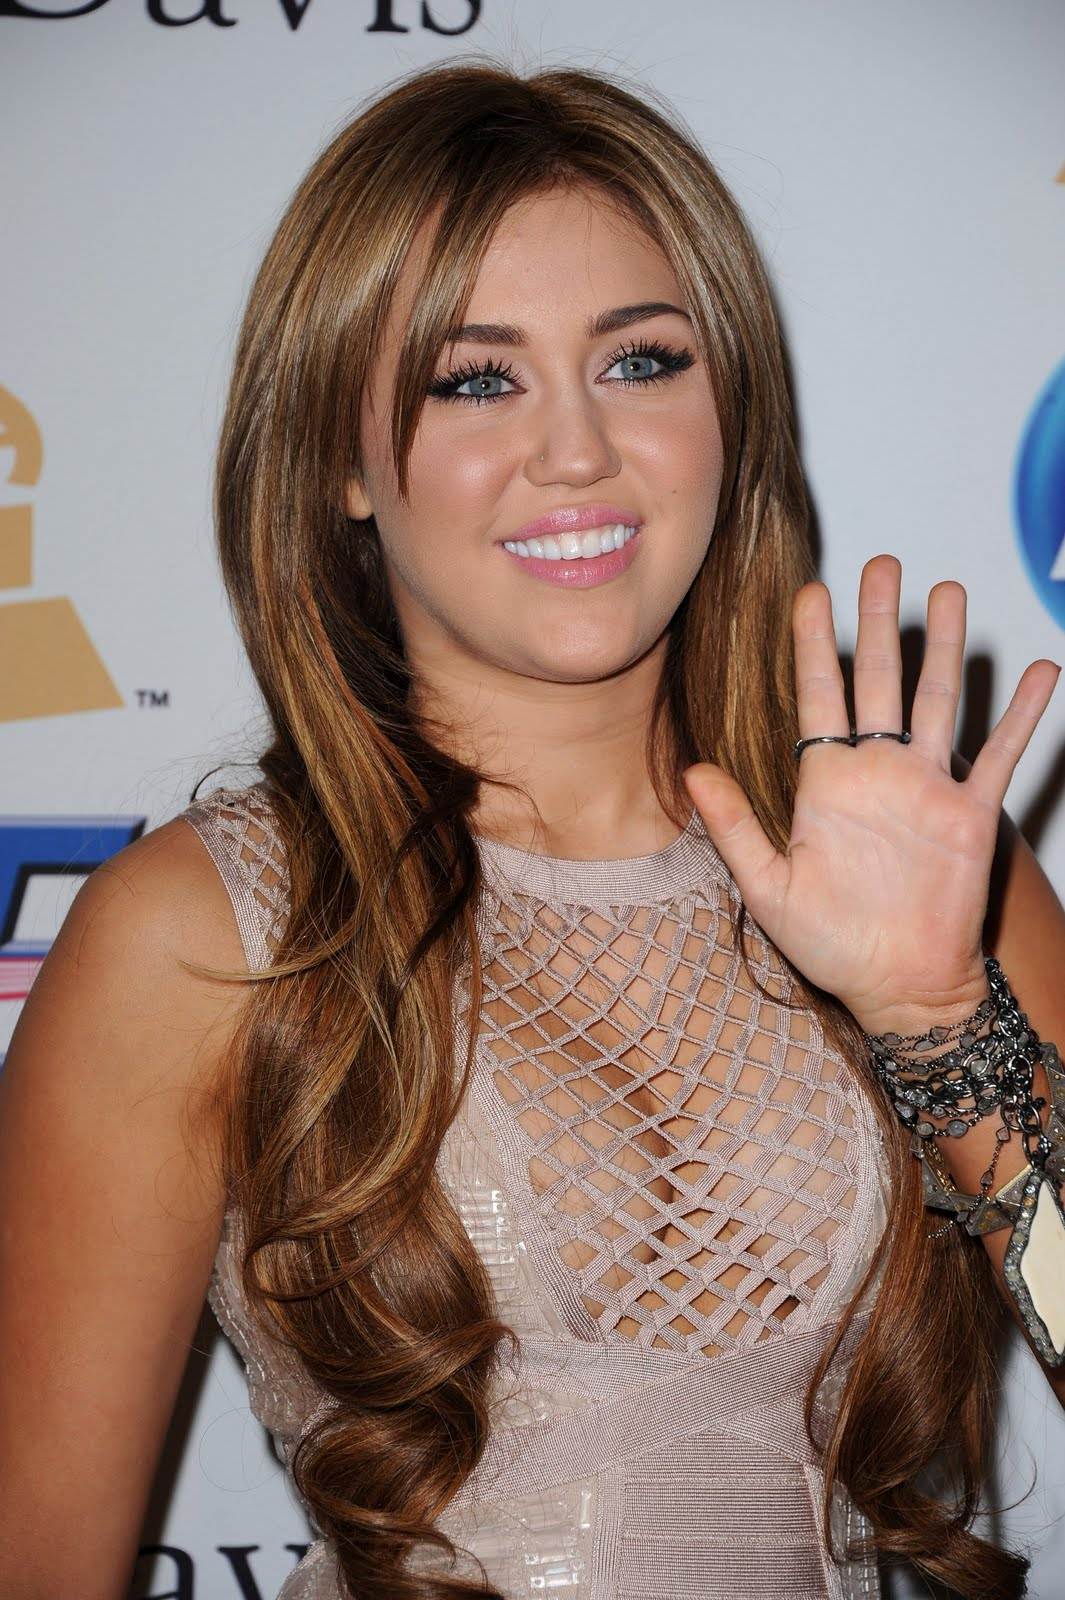 HOT CELEBRITY: Miley Ray Cyrus Hot Photo and Mini Biography